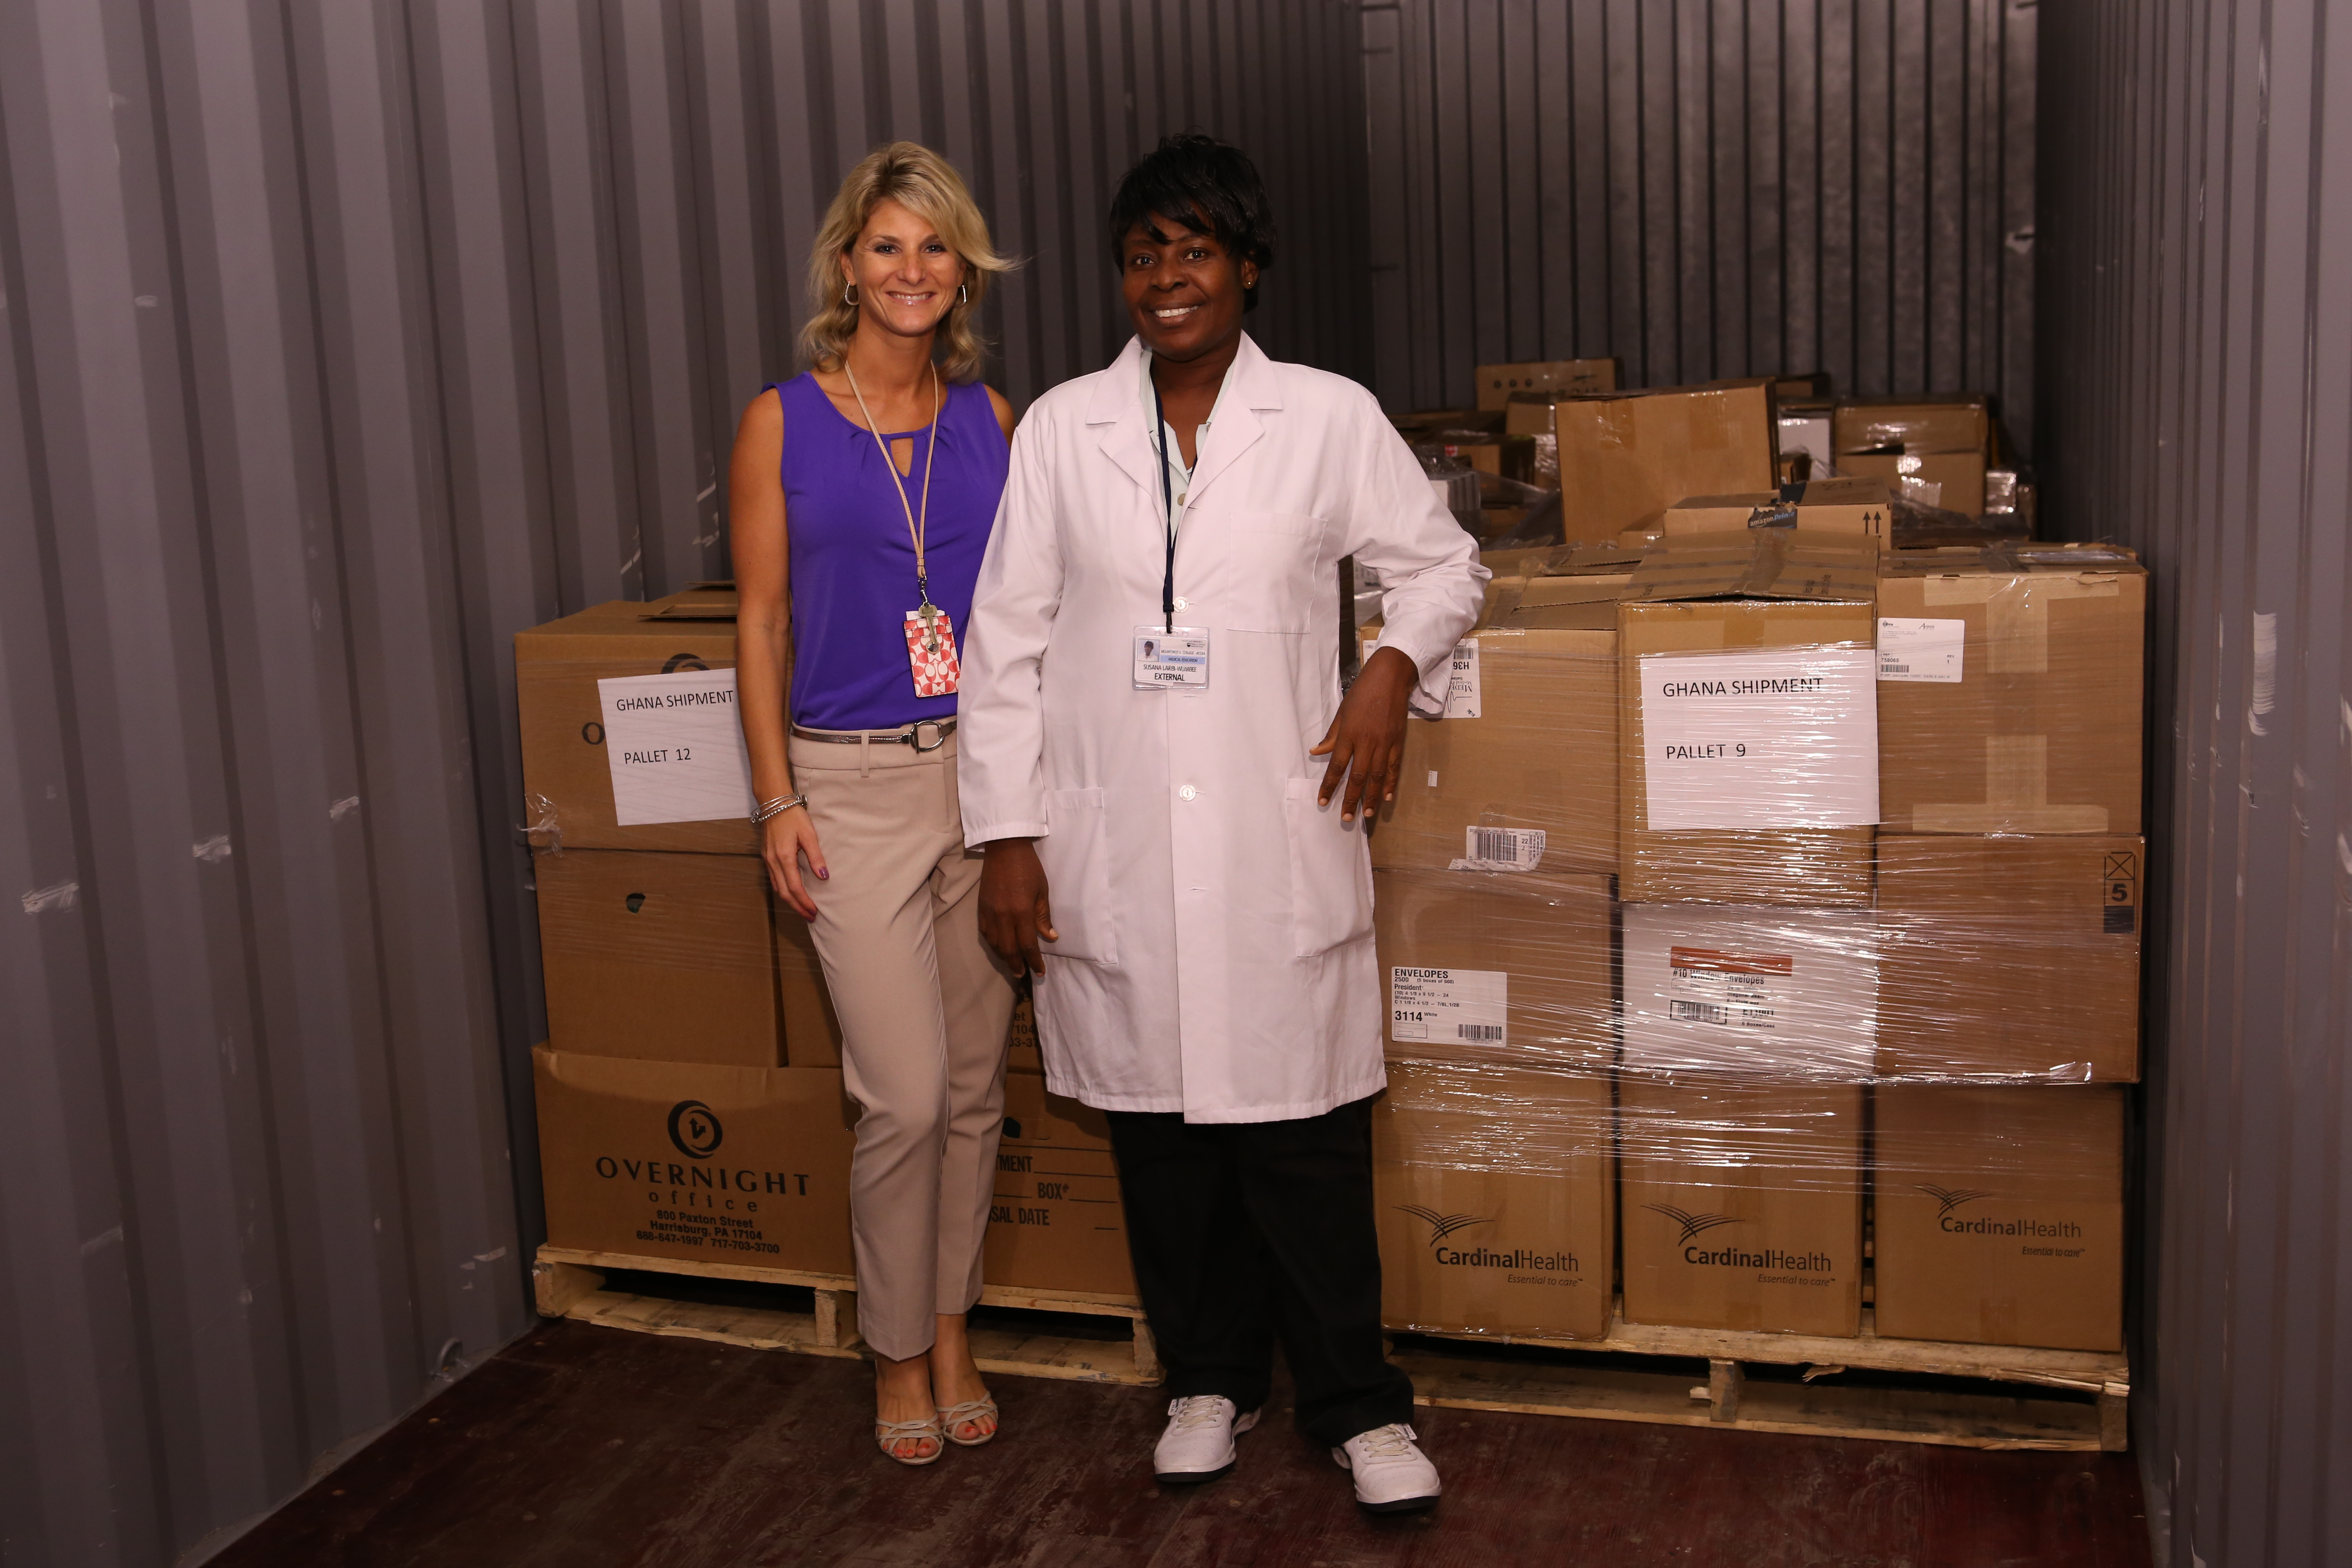 Penn State College of Medicine's Tina Engle with Susana Wumbee, a Mountcrest faculty member visiting the College of Medicine's Simulation Center for a six-month fellowship with a portion of the boxes full of donated medical education resources donated to Mountcrest College University.